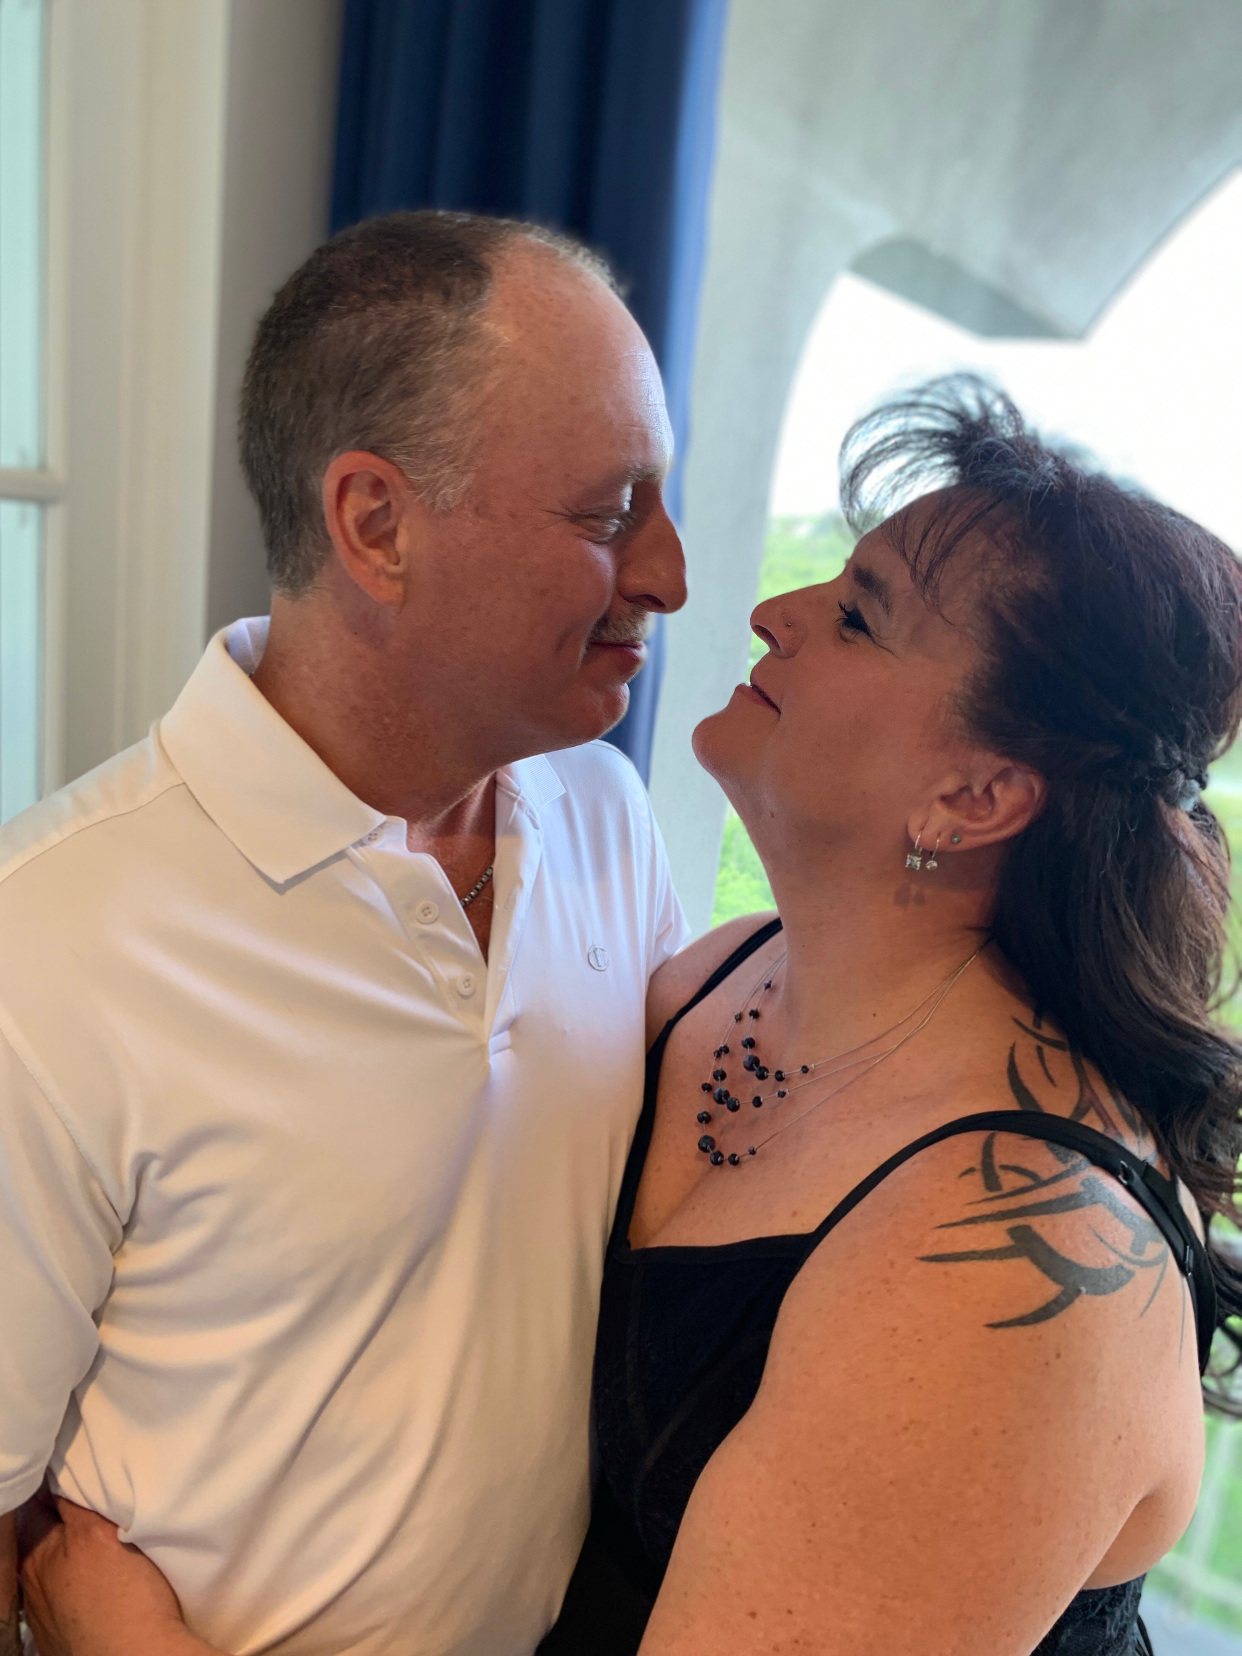 So in love at their vow renewal 21 years later